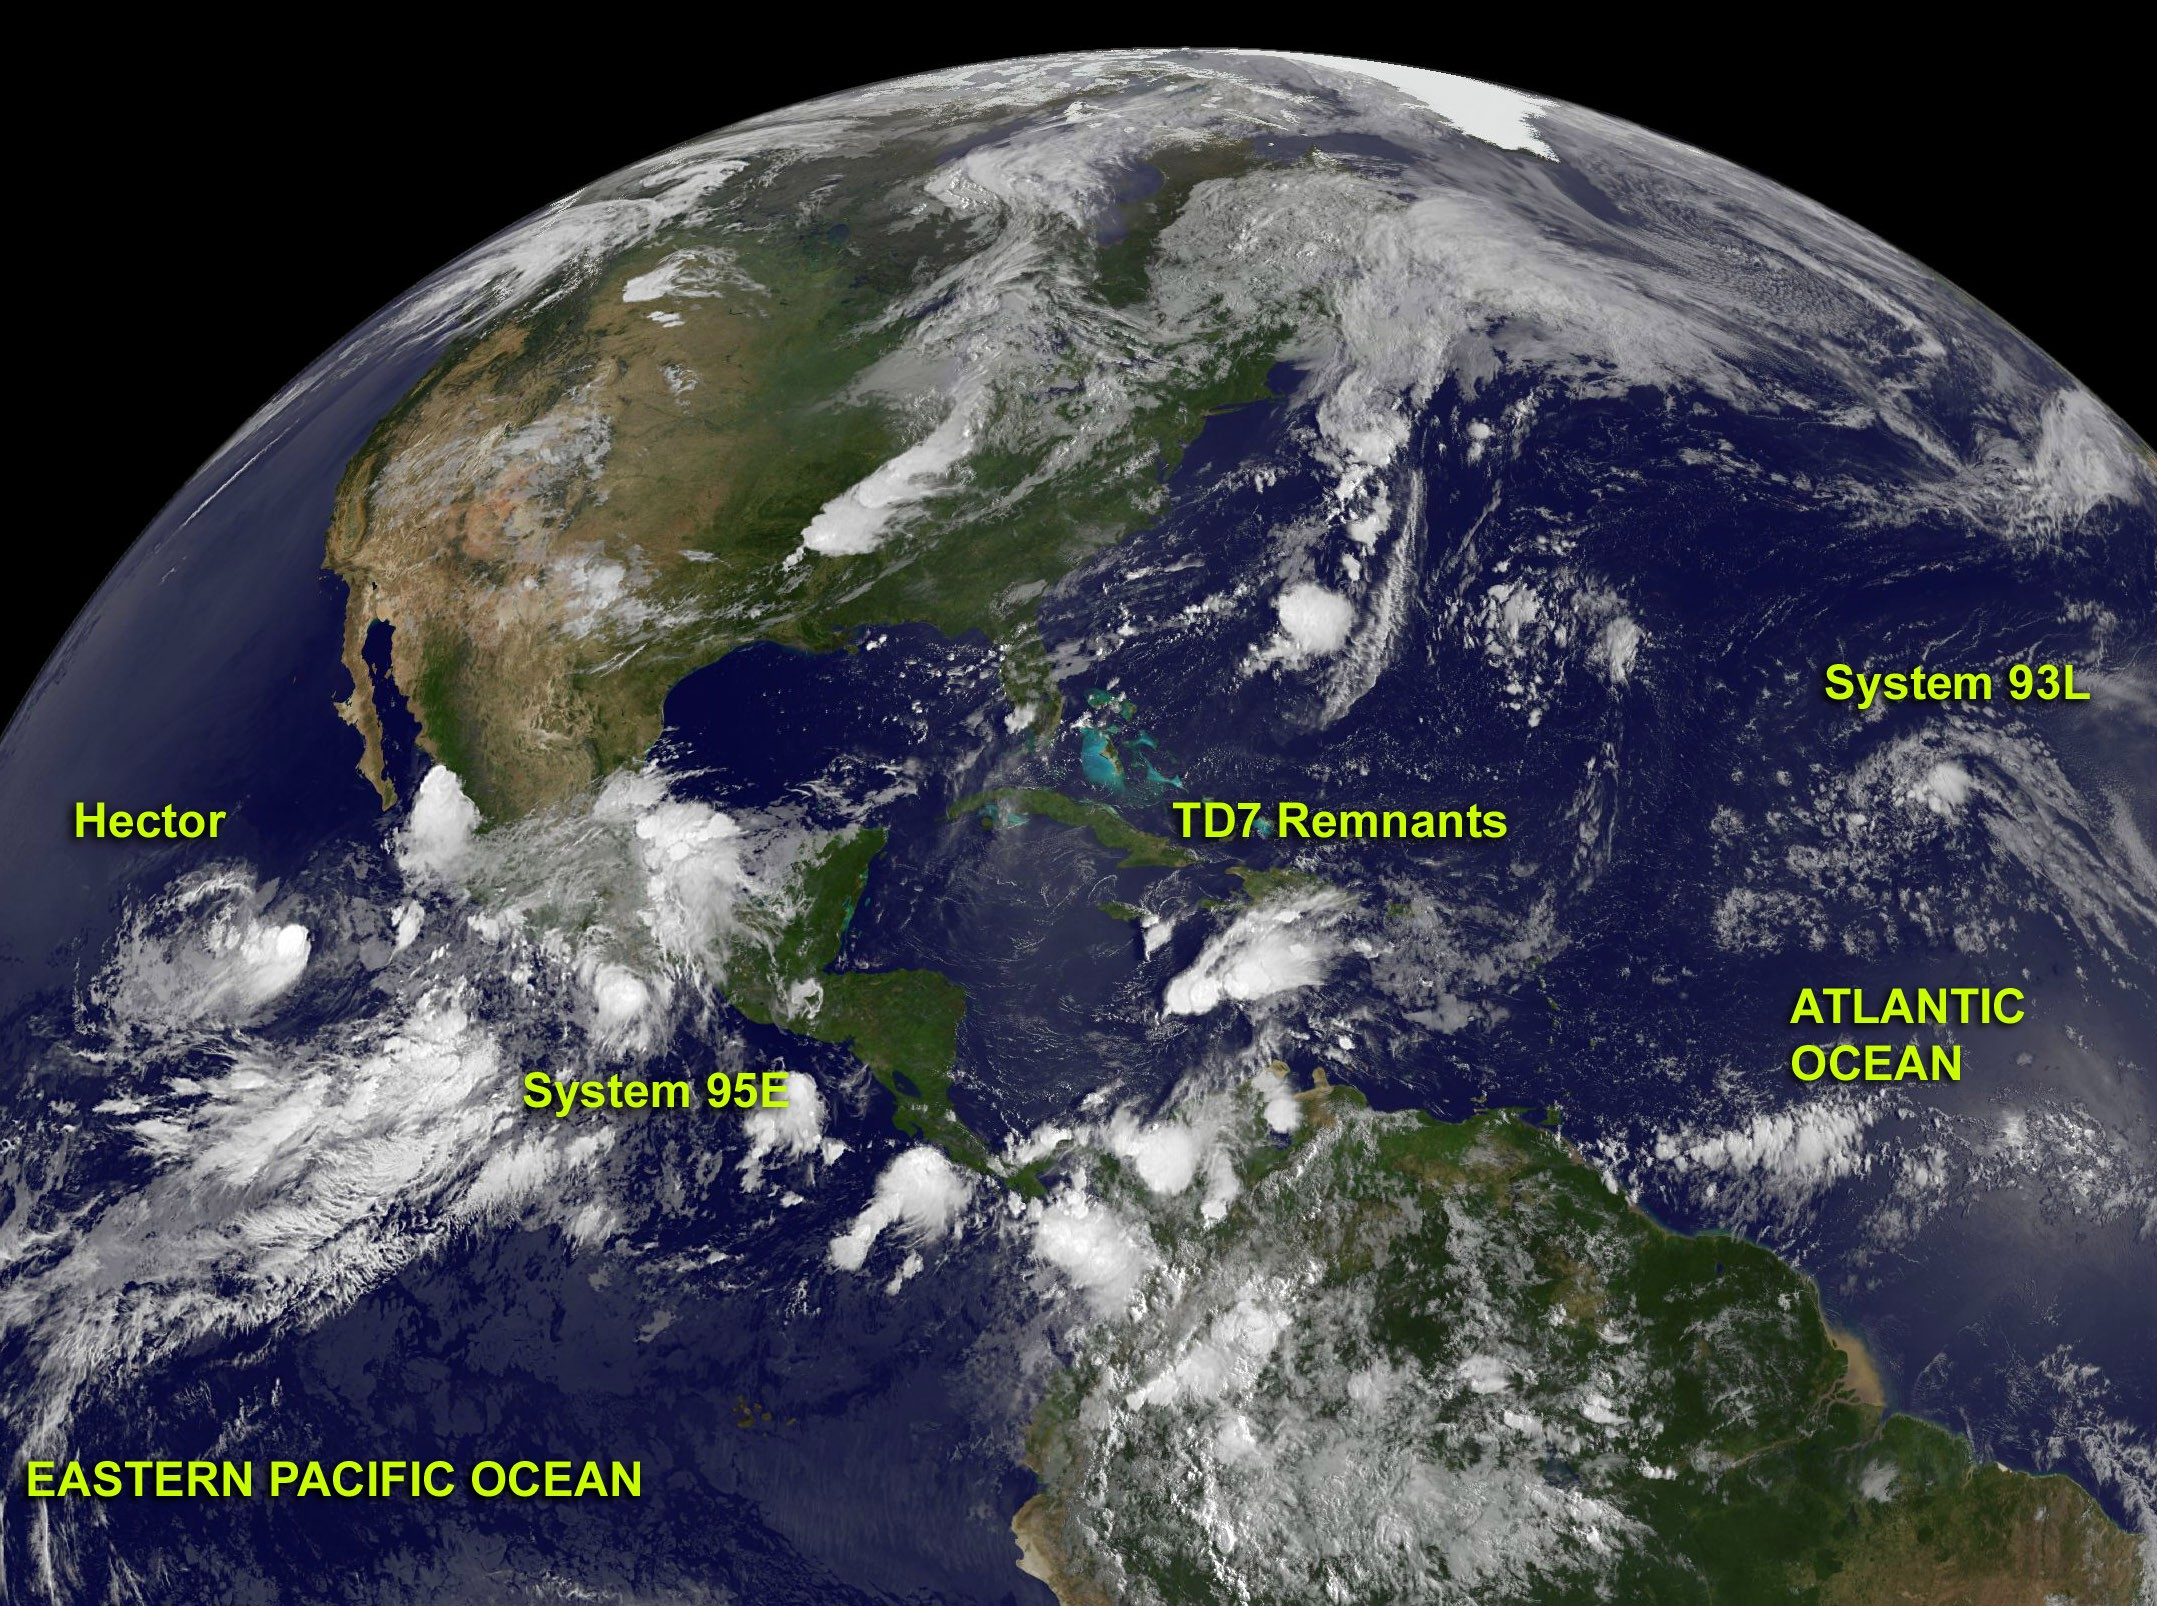 This Image Of The Atlantic Ocean And Eastern Pacific Ocean Was Created By Nasas Goes Project Using Noaa Goes  And Goes  Satellite Imagery On August